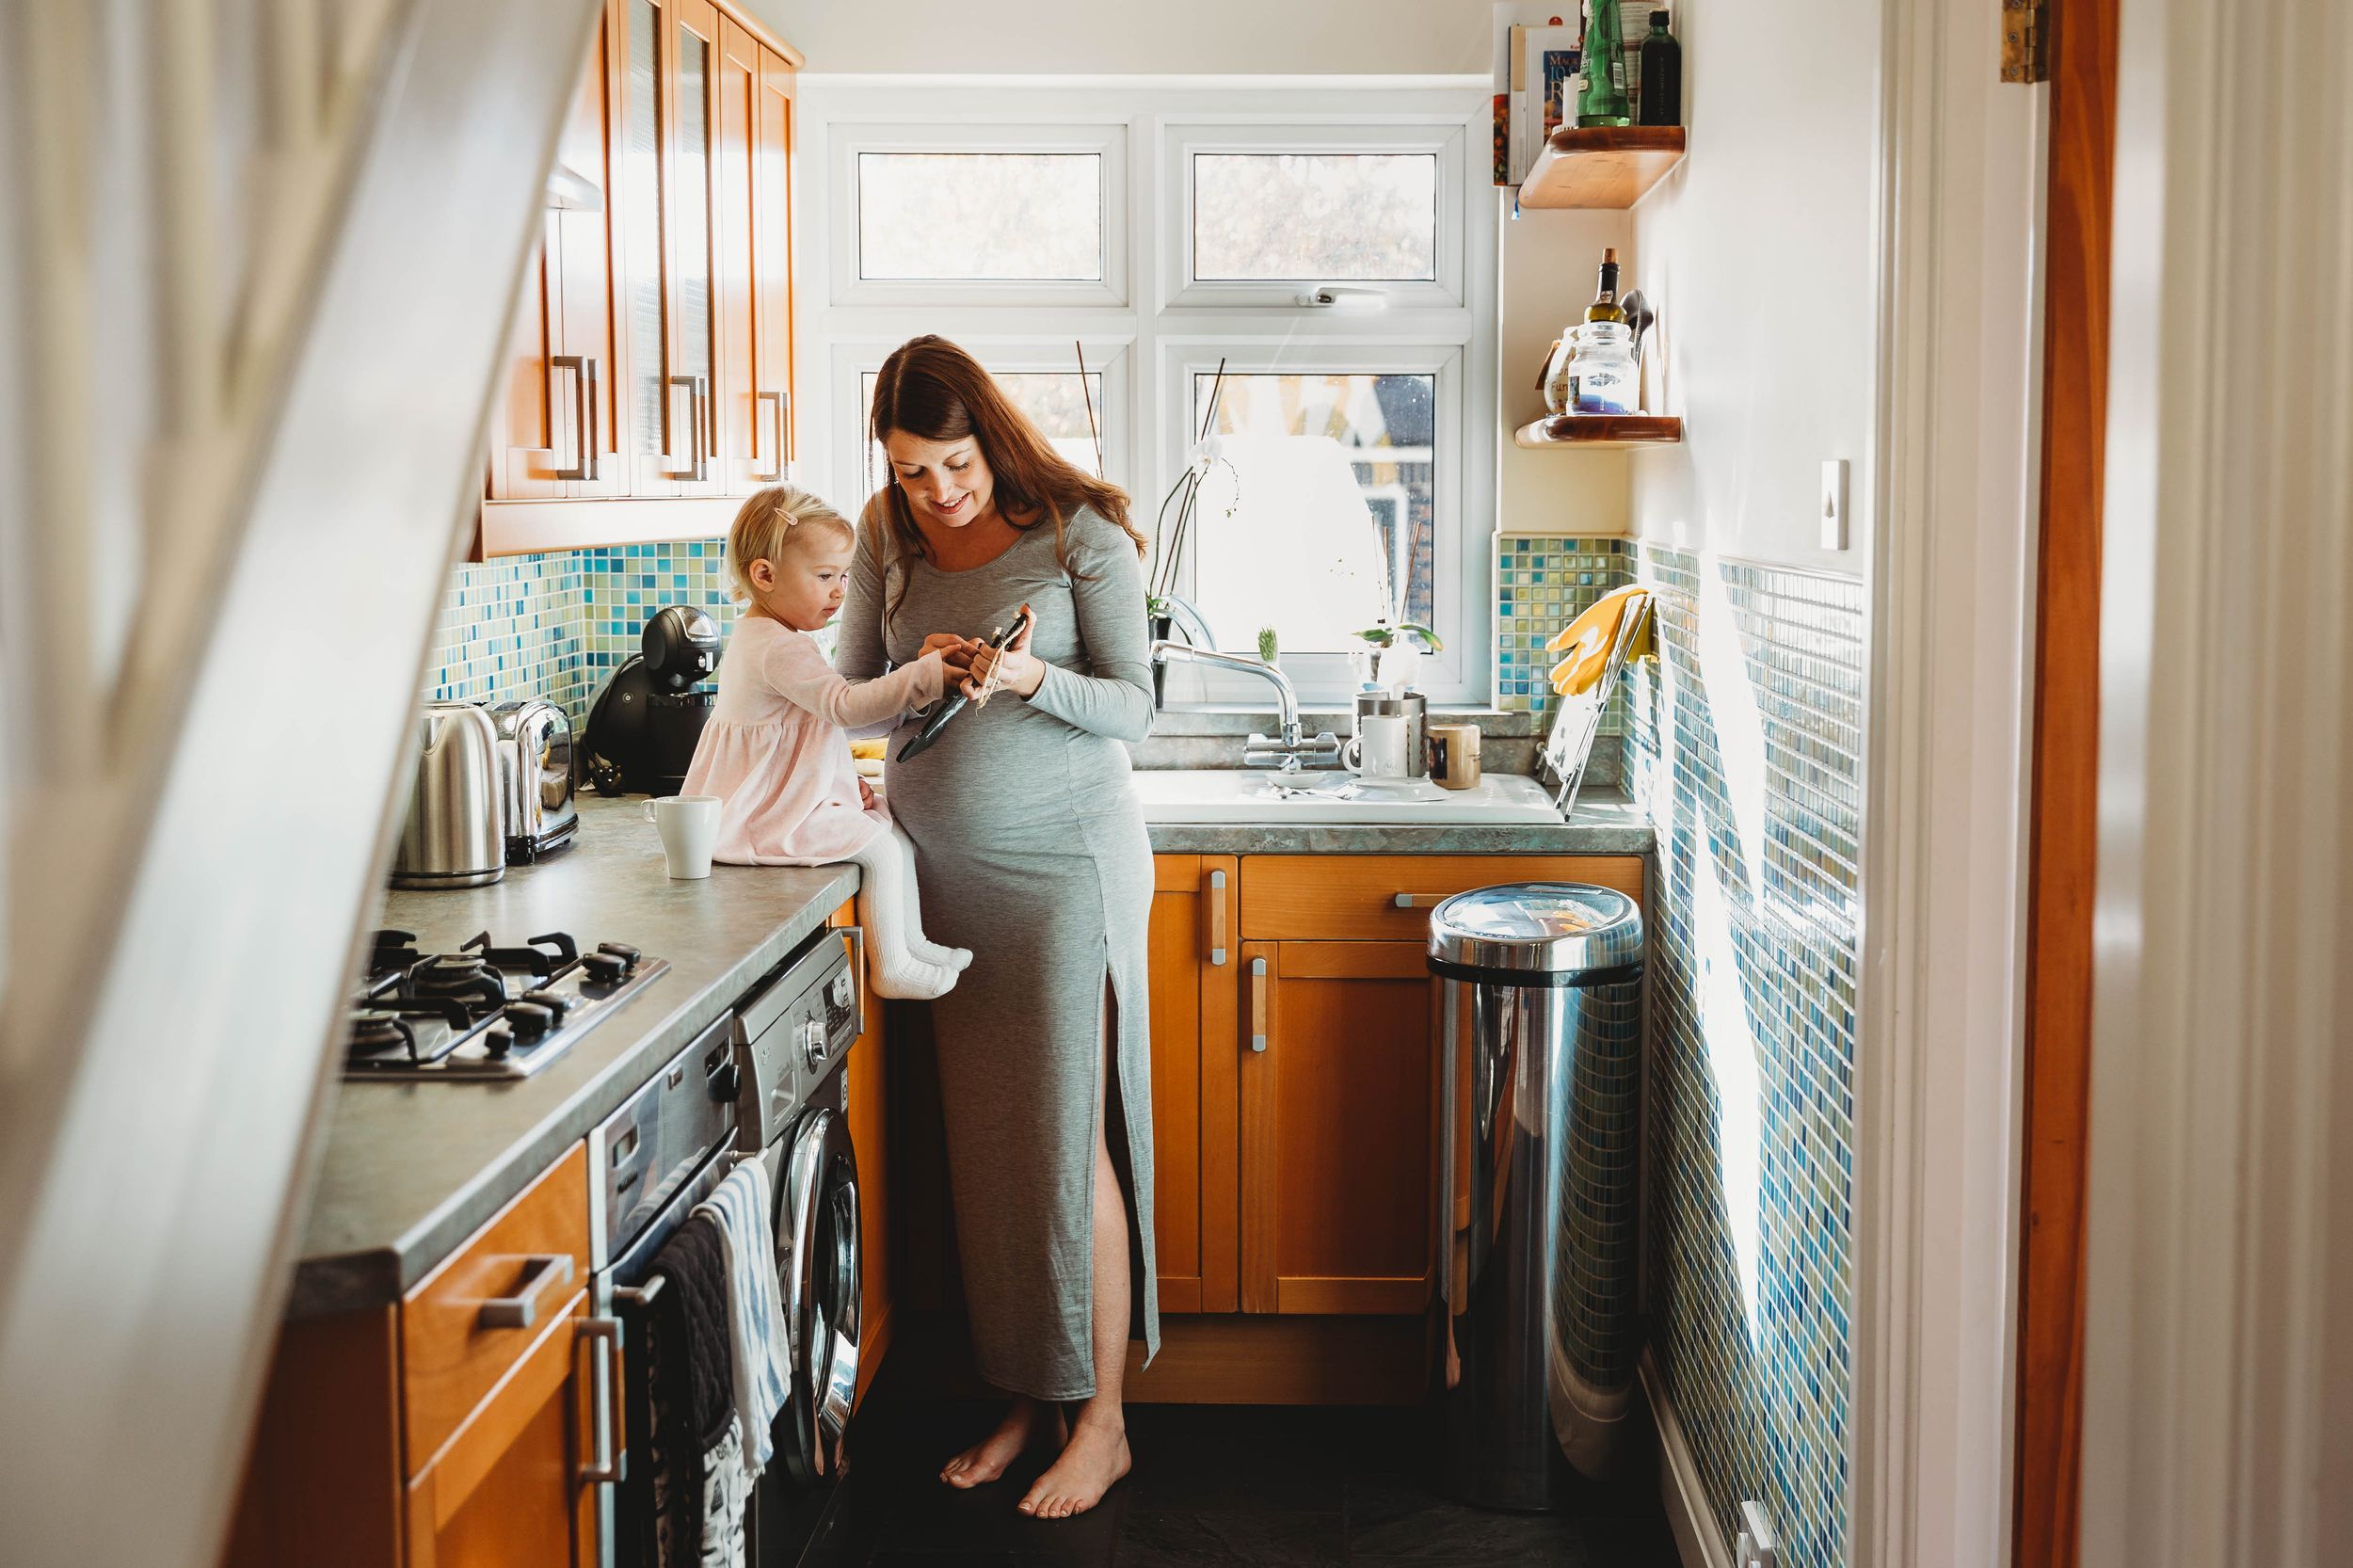 pregnant woman in grey maternity dress standing in kitchen with little girl